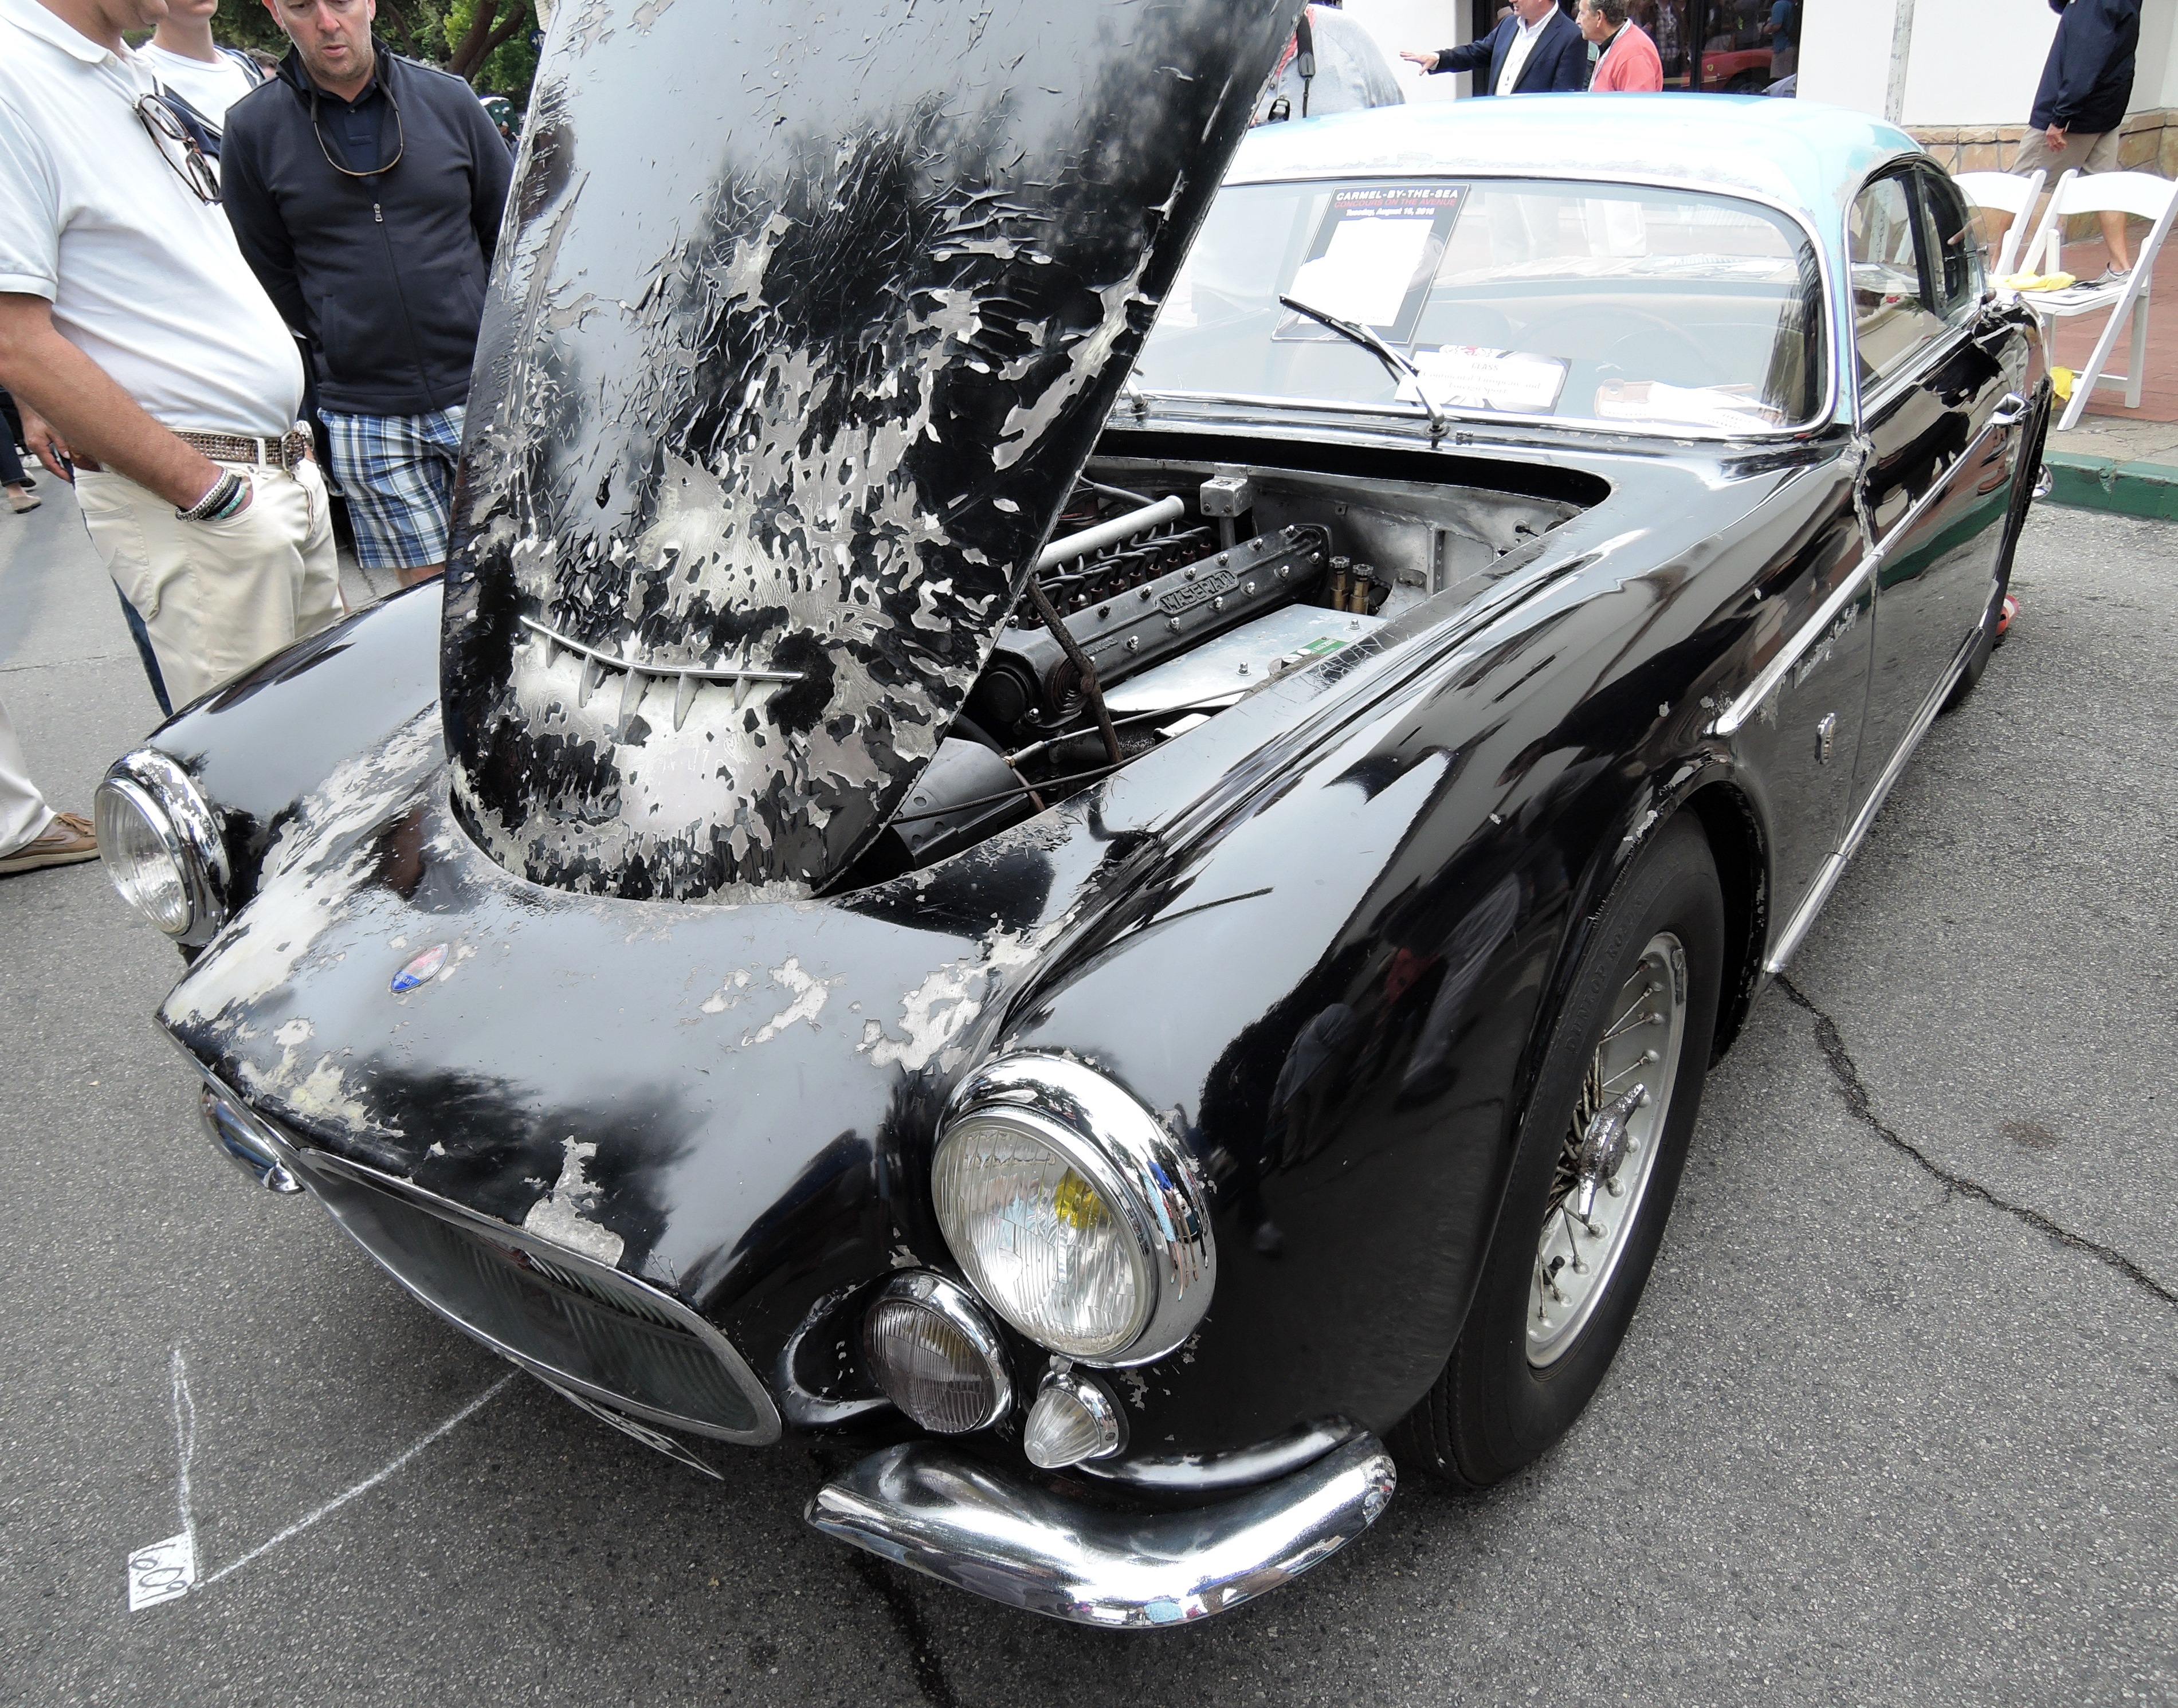 unrestored black 1956 Maserati A6G Gran Sport Berlinetta Frua - Concours on the Ave Carmel